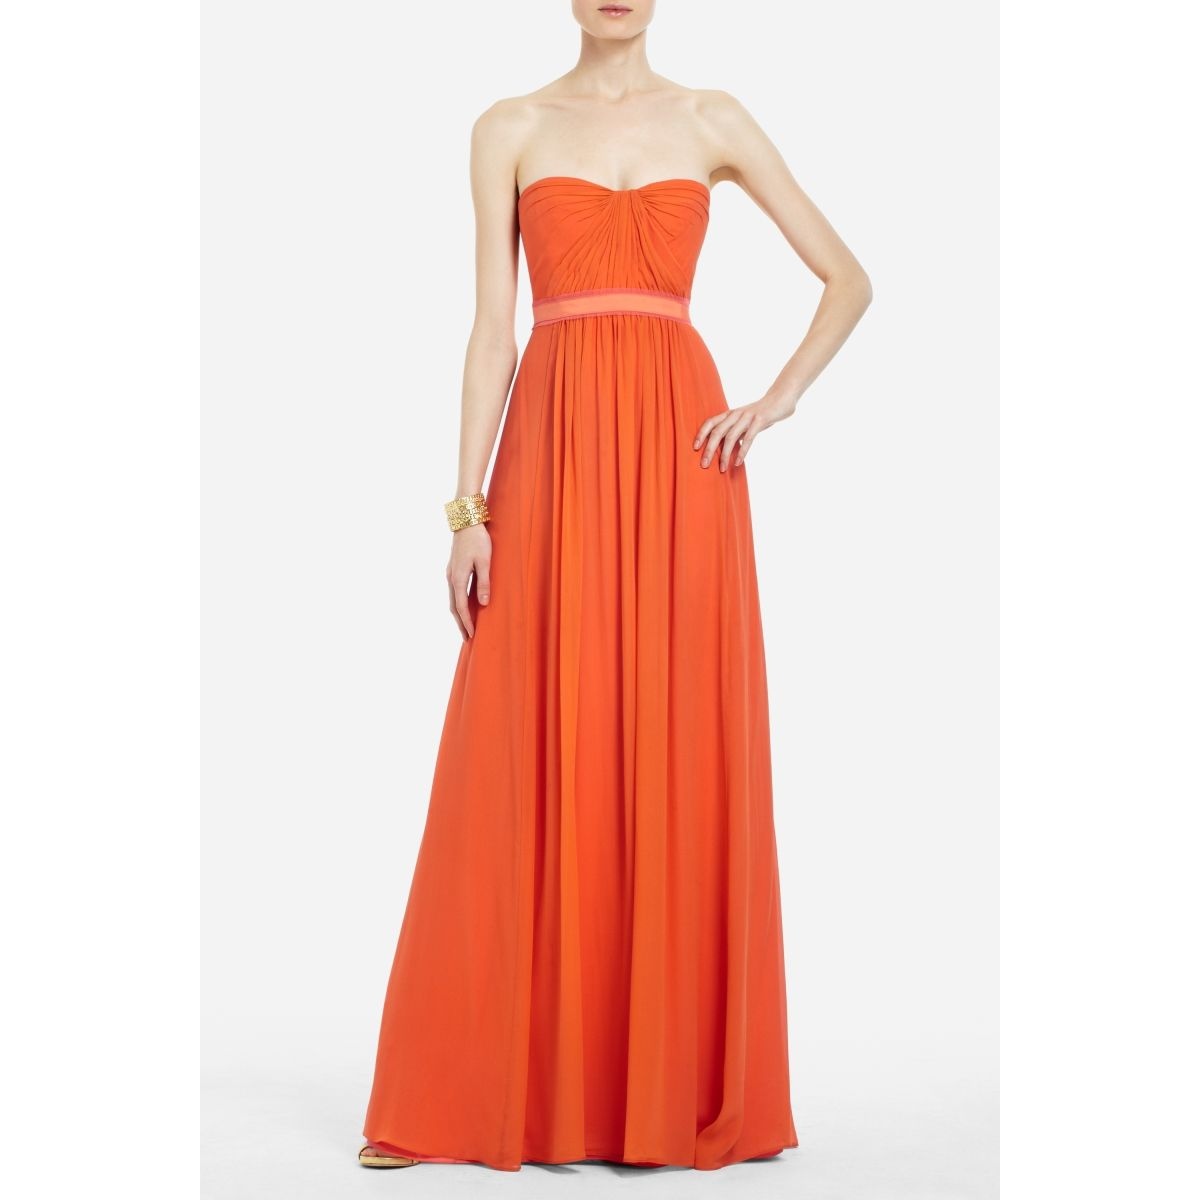 Pin by kim bigler on my style pinterest amber gowns and orange